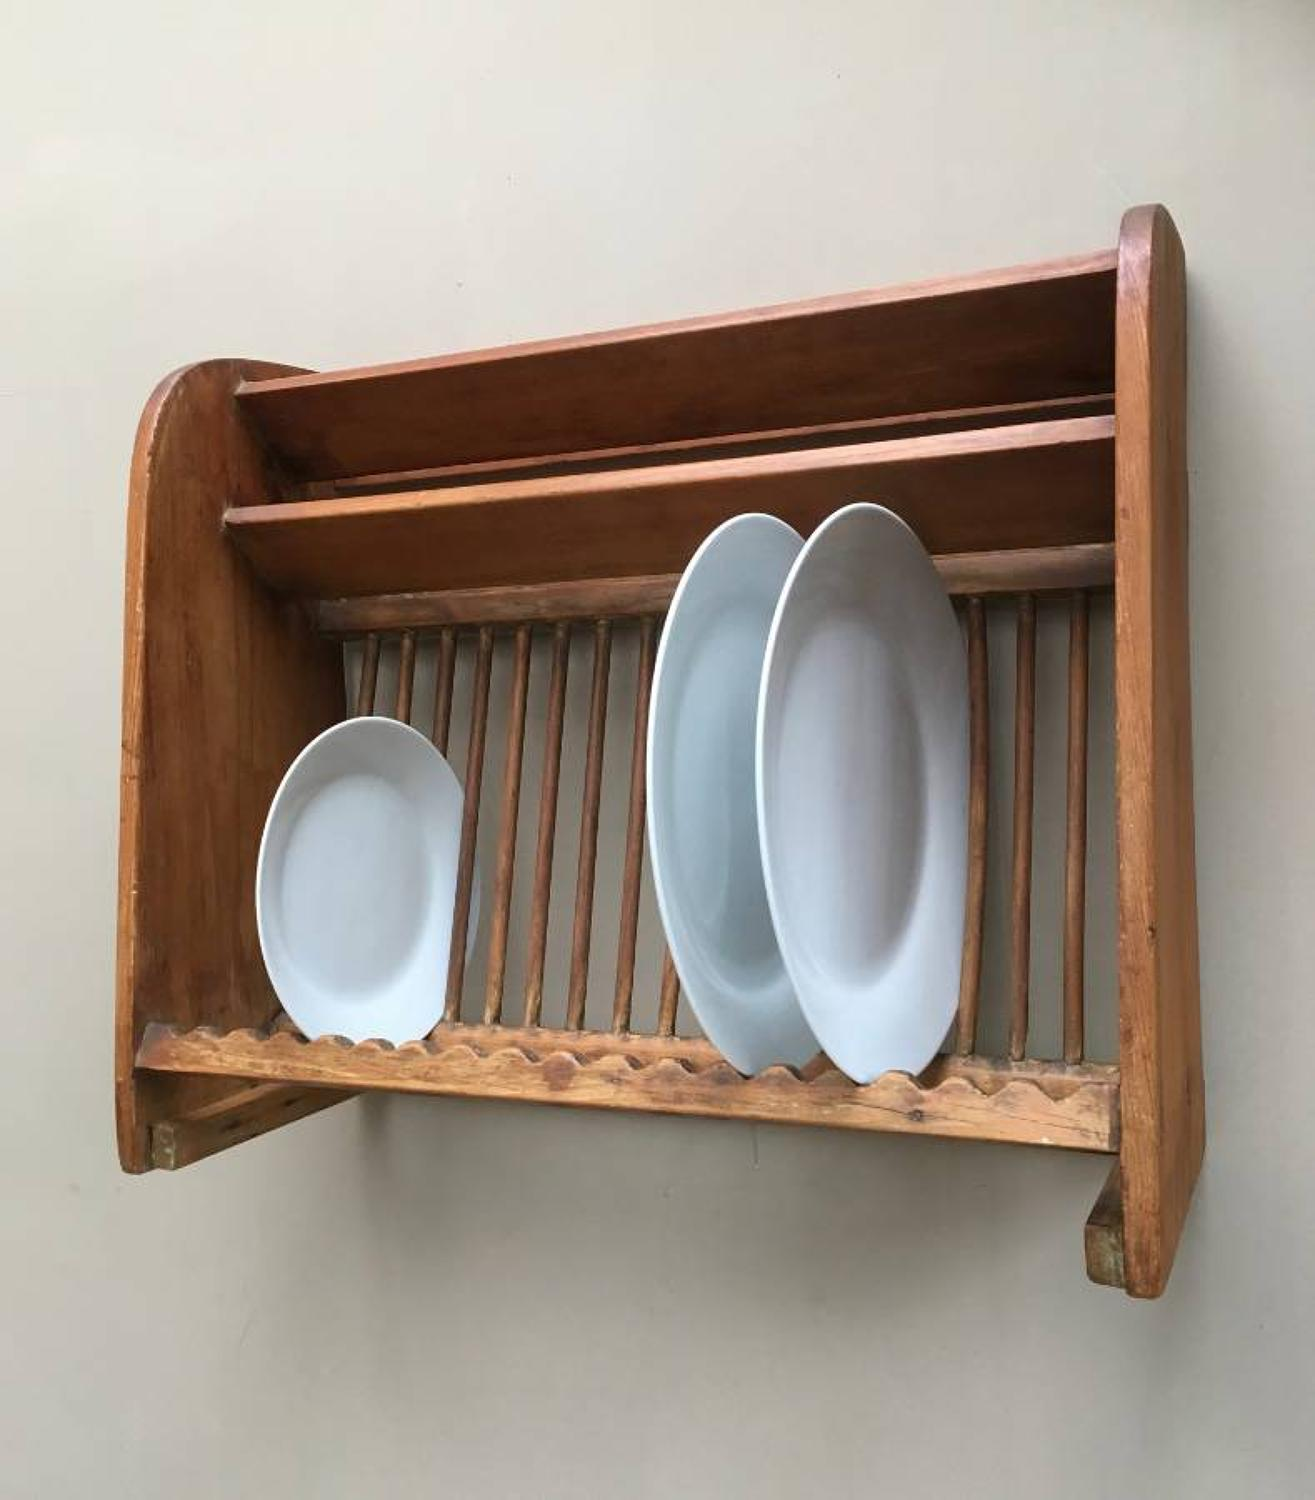 Late Victorian Stripped Pine Plate Rack with Top Cup & Saucers Racks